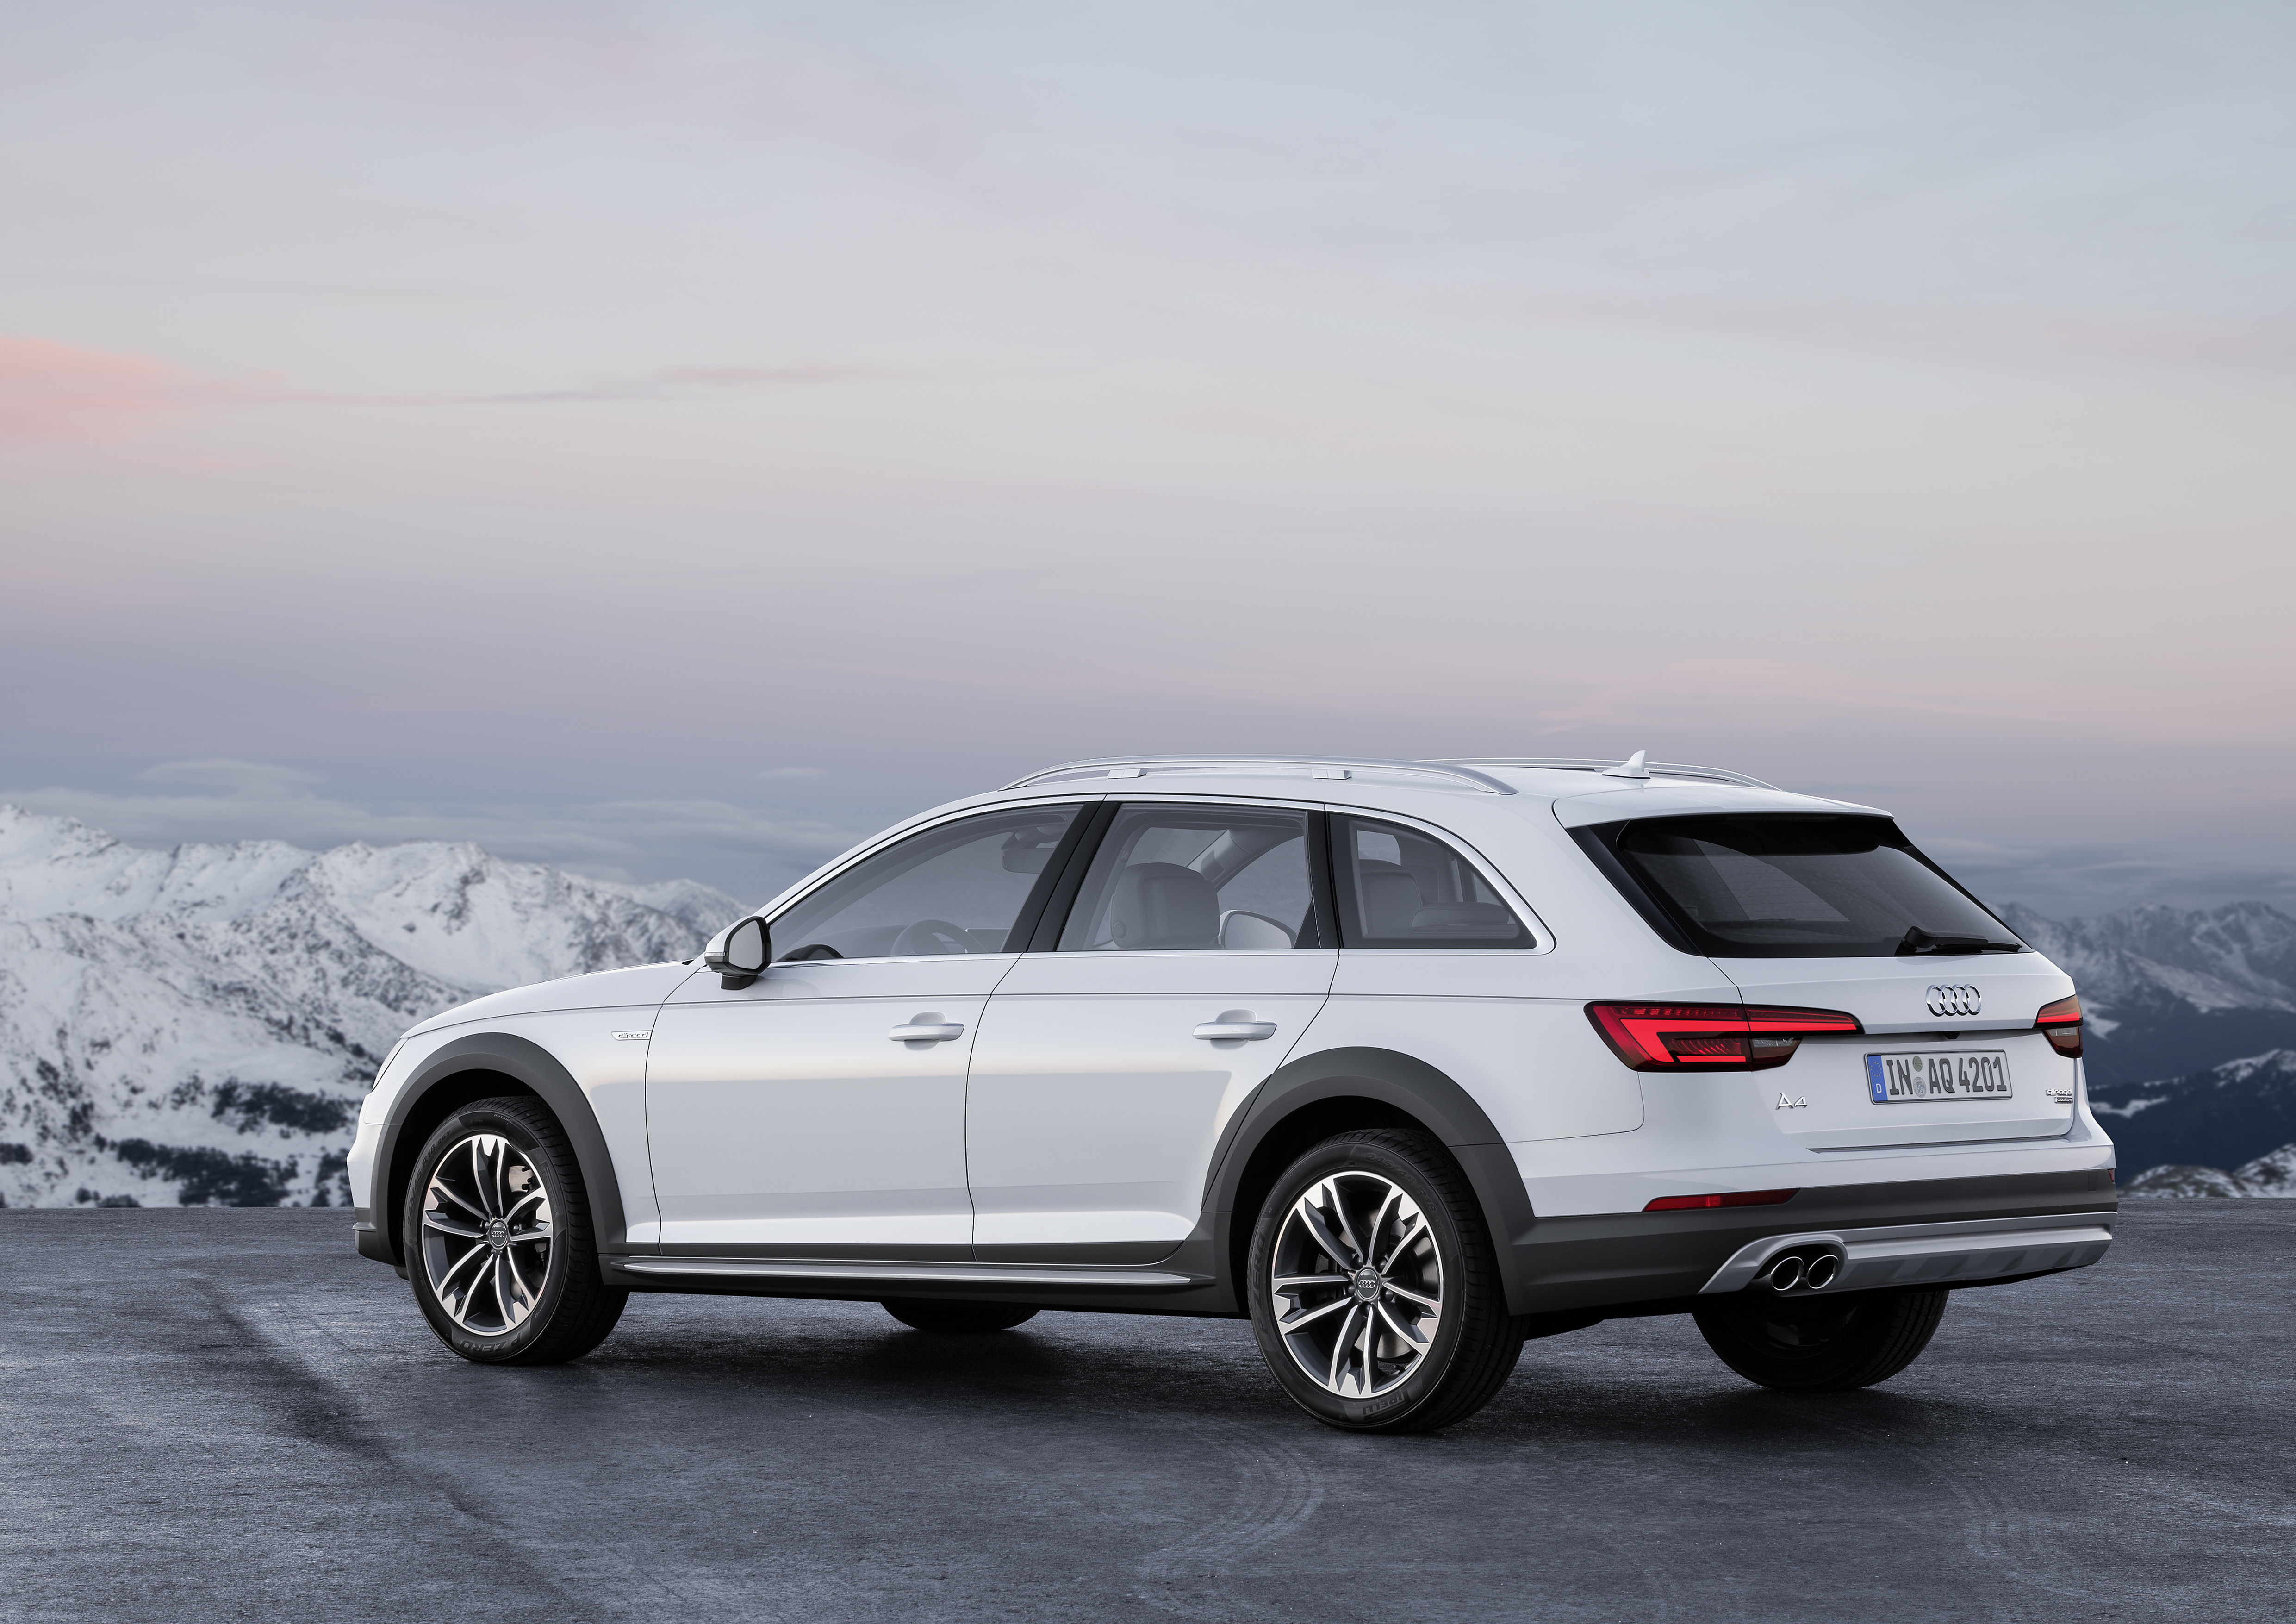 B9 Audi A4 Allroad Quattro Is A Go Anywhere A4 Avant Image